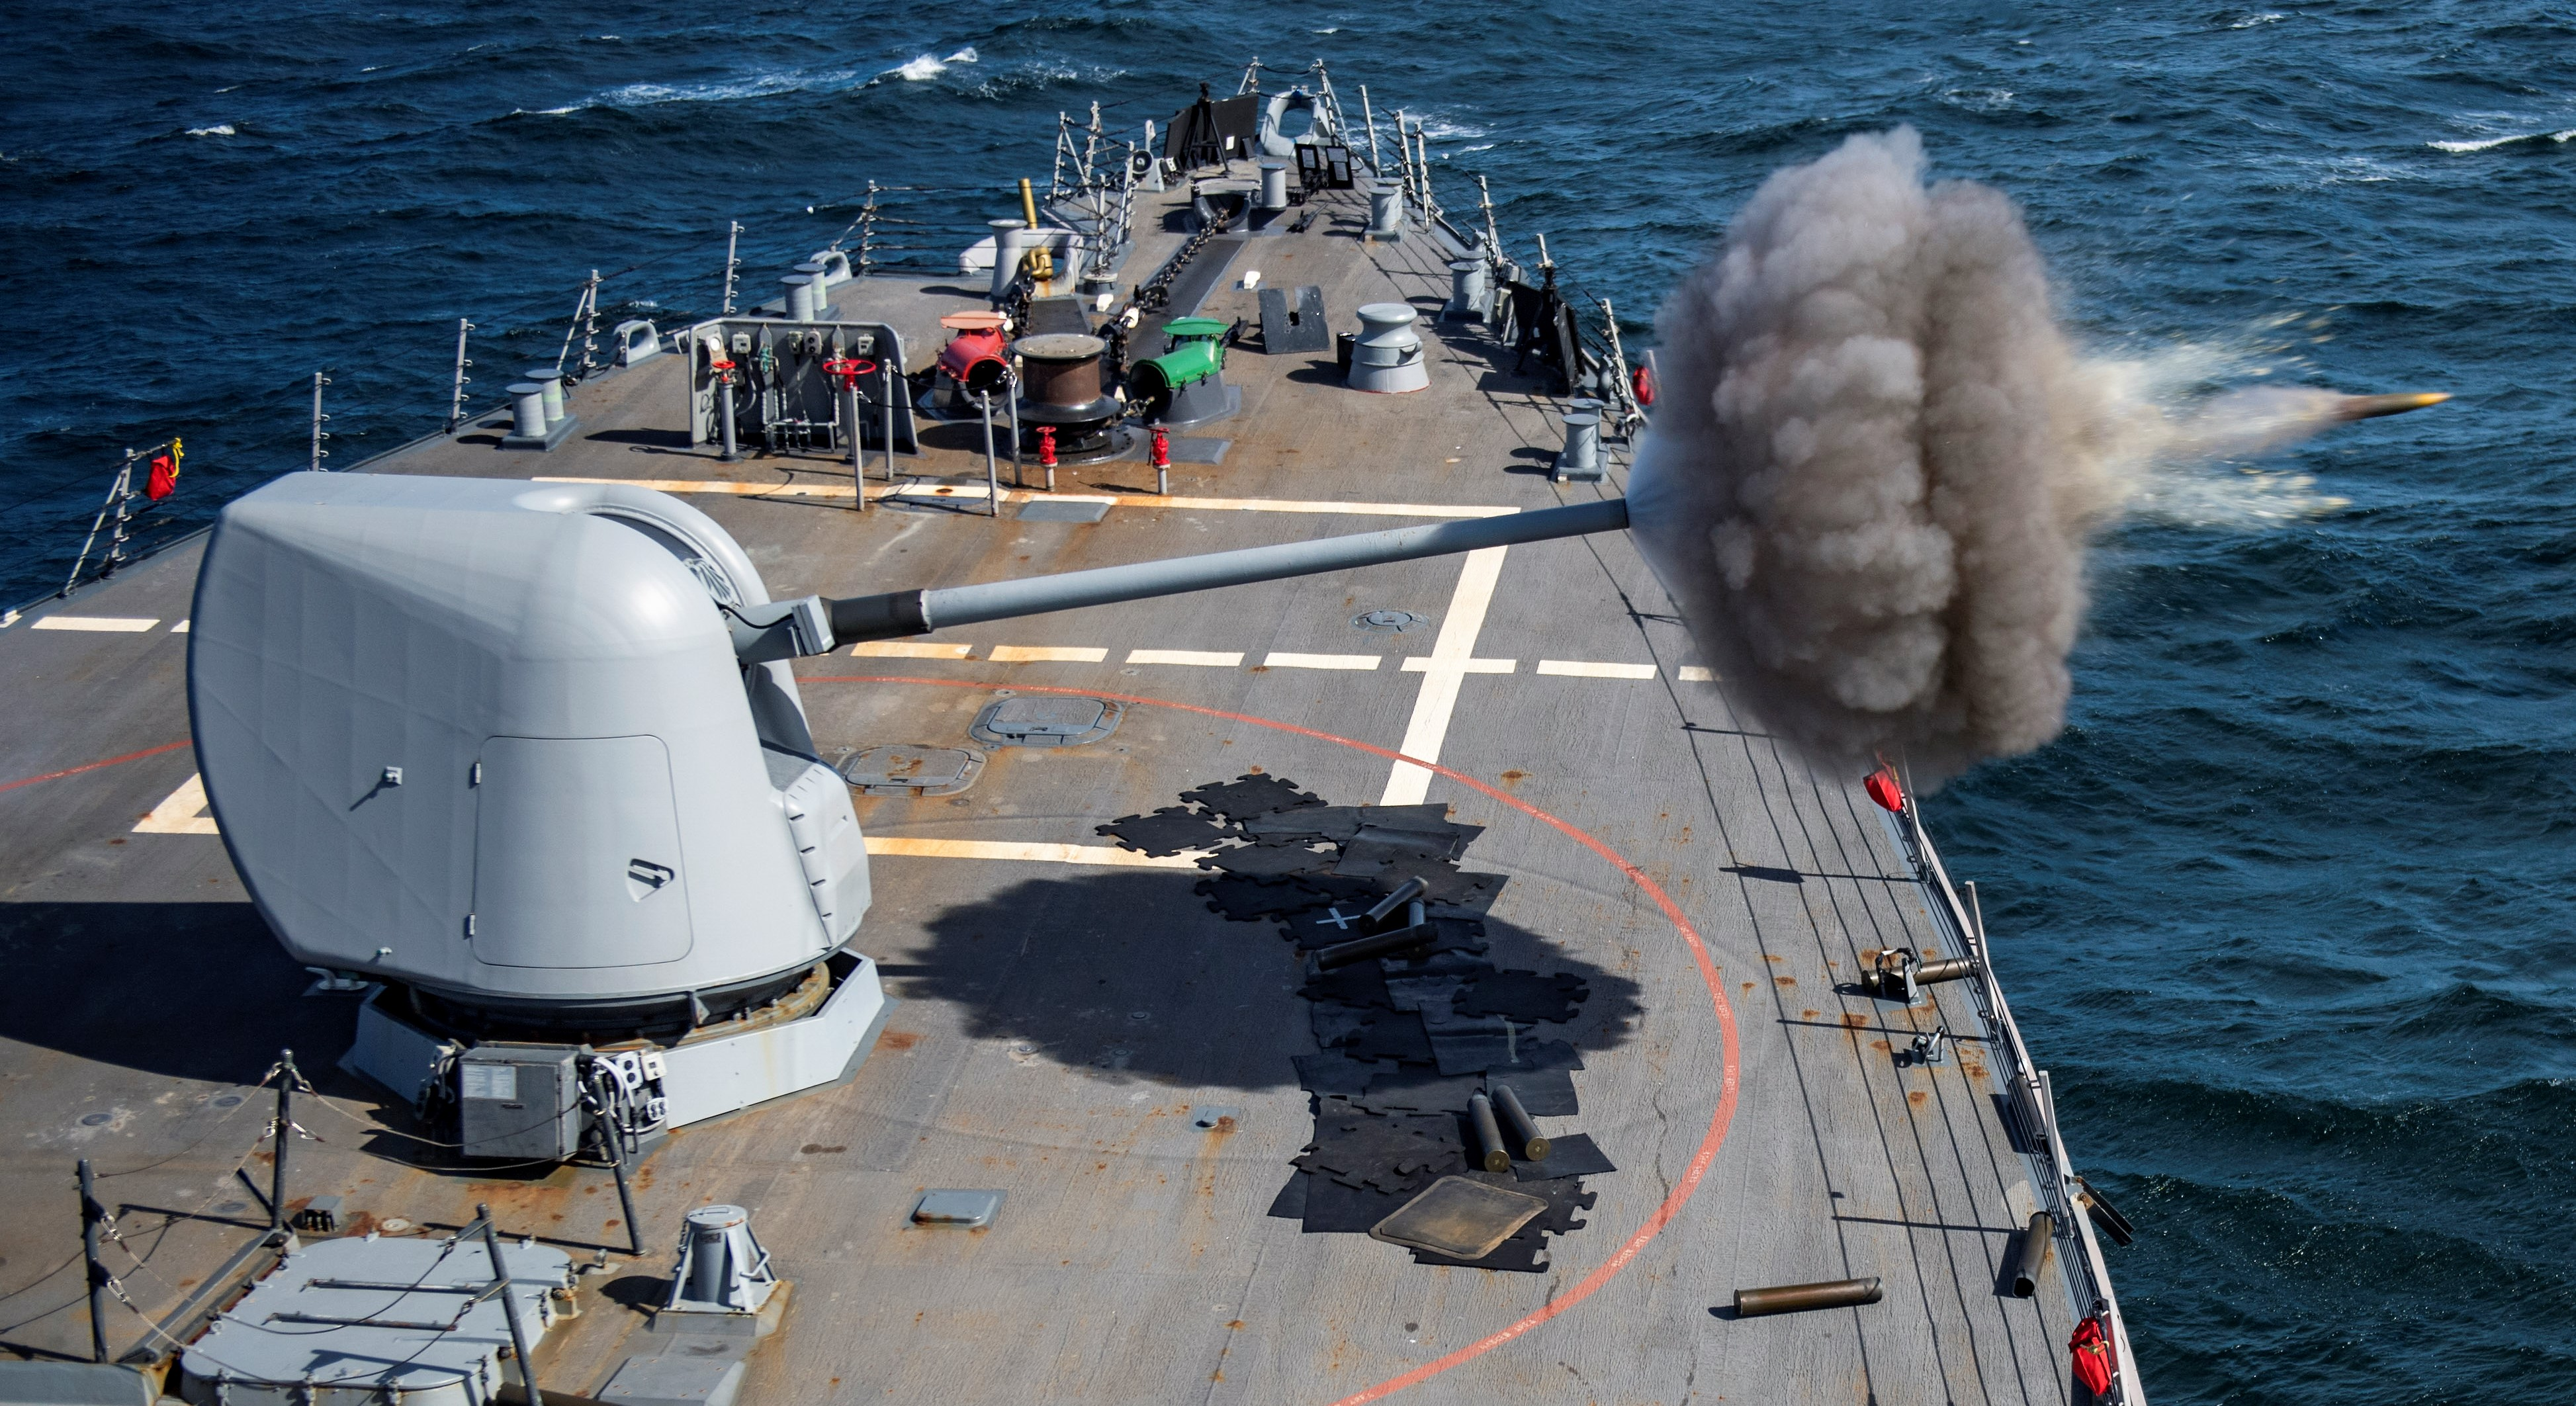 ATLANTIC OCEAN (Jan. 14, 2018) The Arleigh Burke-class guided-missile destroyer USS Ross (DDG 71) fires its 5-inch gun during a naval surface fire support exercise with the Royal Moroccan Navy as part of exercise African Sea Lion, Jan. 14, 2018. Among African Sea Lion's objectives is to test and evaluate US and Moroccan ability to conduct coordinated, combined naval surface fire support exercises on the Tan Tan firing range. Ross, forward-deployed to Rota, Spain, is on its sixth patrol in the U.S. 6th Fleet area of operations in support of regional allies and partners and U.S. national security interests in Europe and Africa. (U.S. Navy photo by Mass Communication Specialist 1st Class Kyle Steckler/Released)